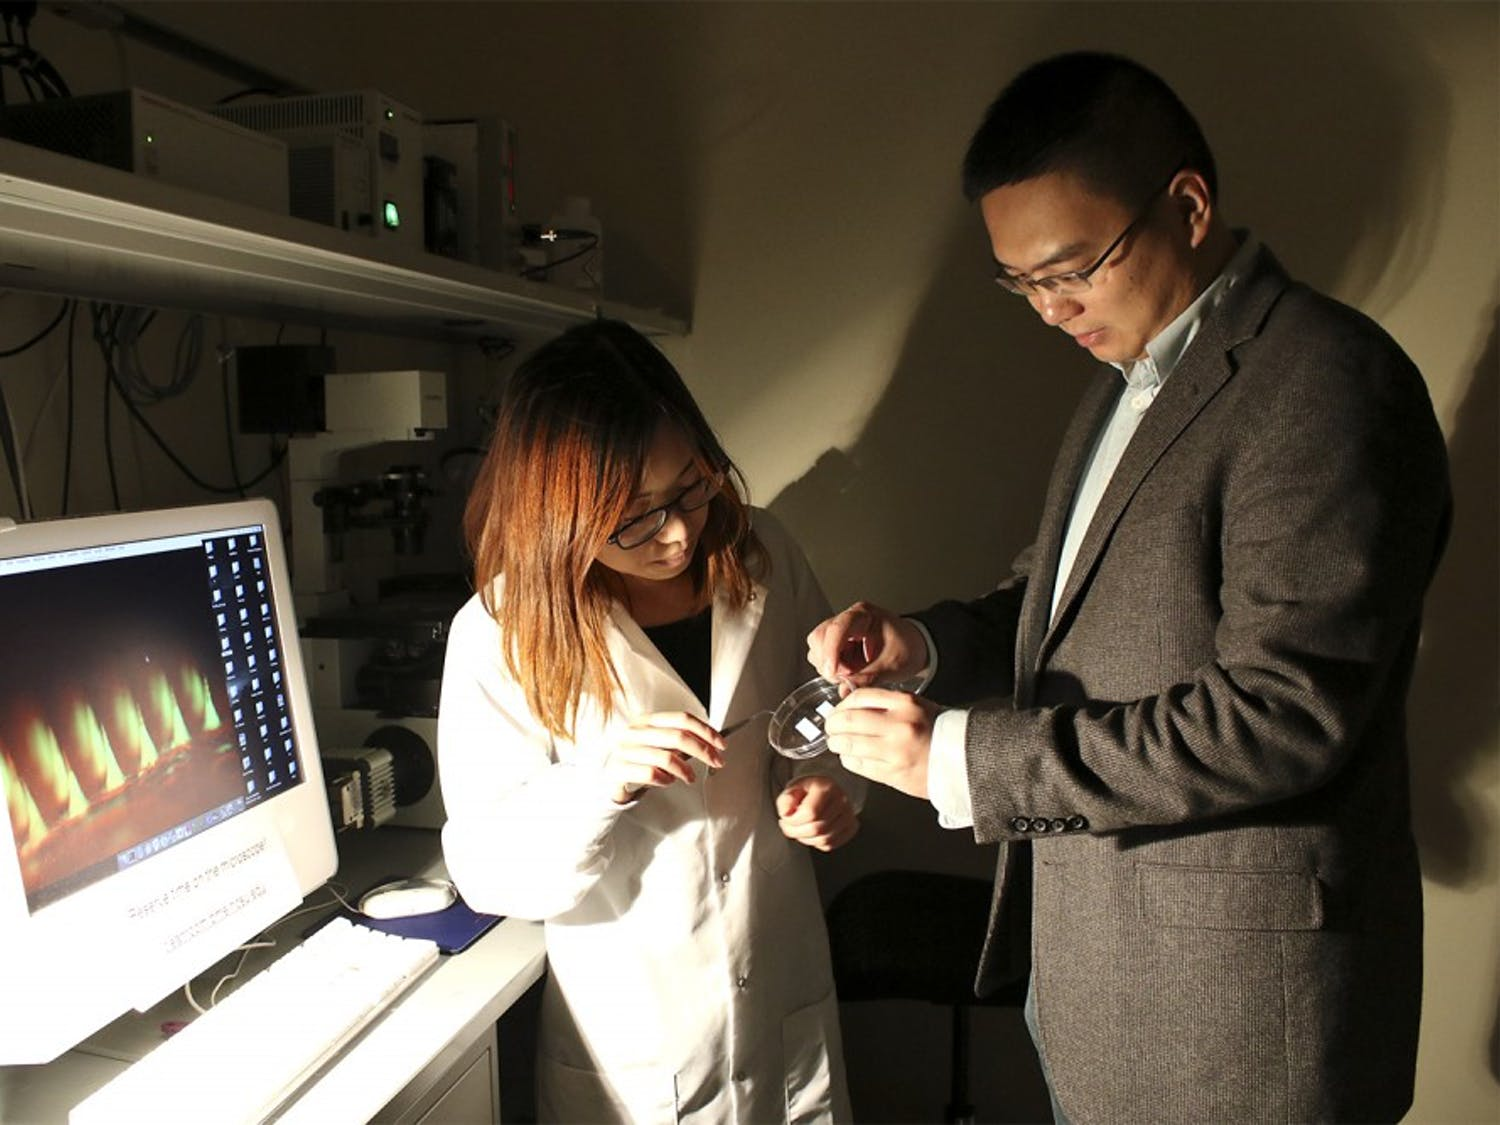 Zhen Gu (right) and Ph.D. student Yanqi Ye demonstrate the equipment used to take Gu's award-winning photo of the insulin patch the lab developed.